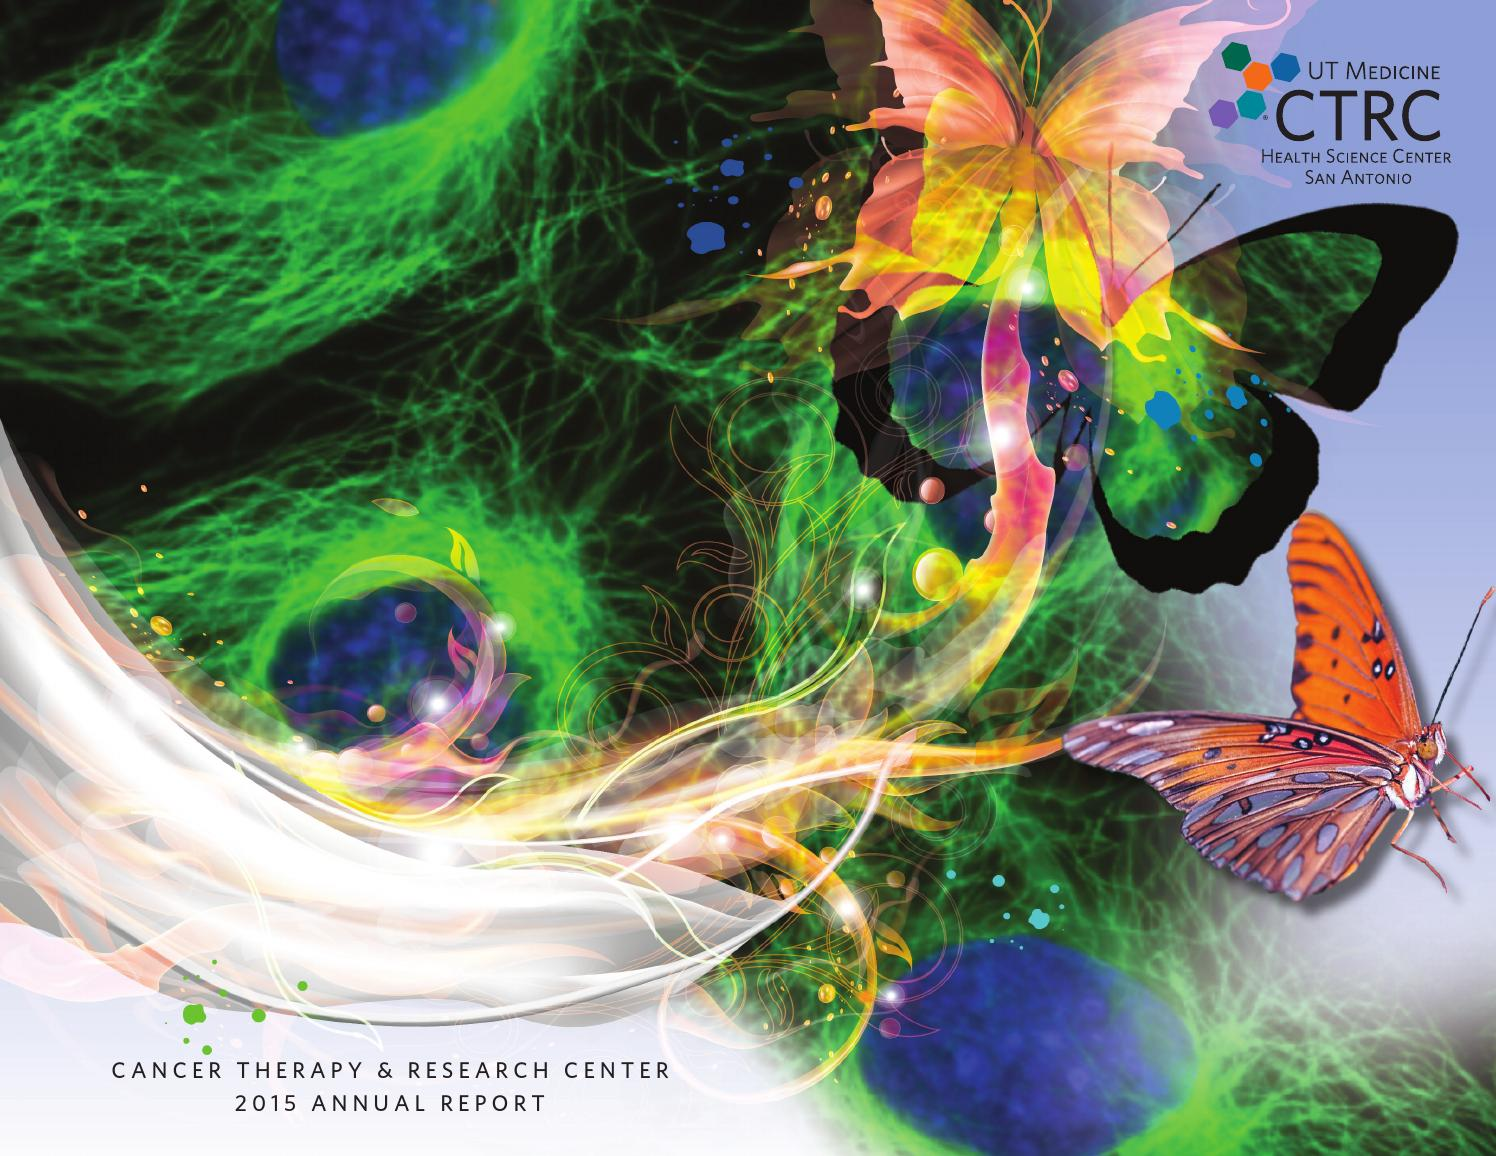 Cancer Therapy & Research Center (CTRC) Annual Report 2015